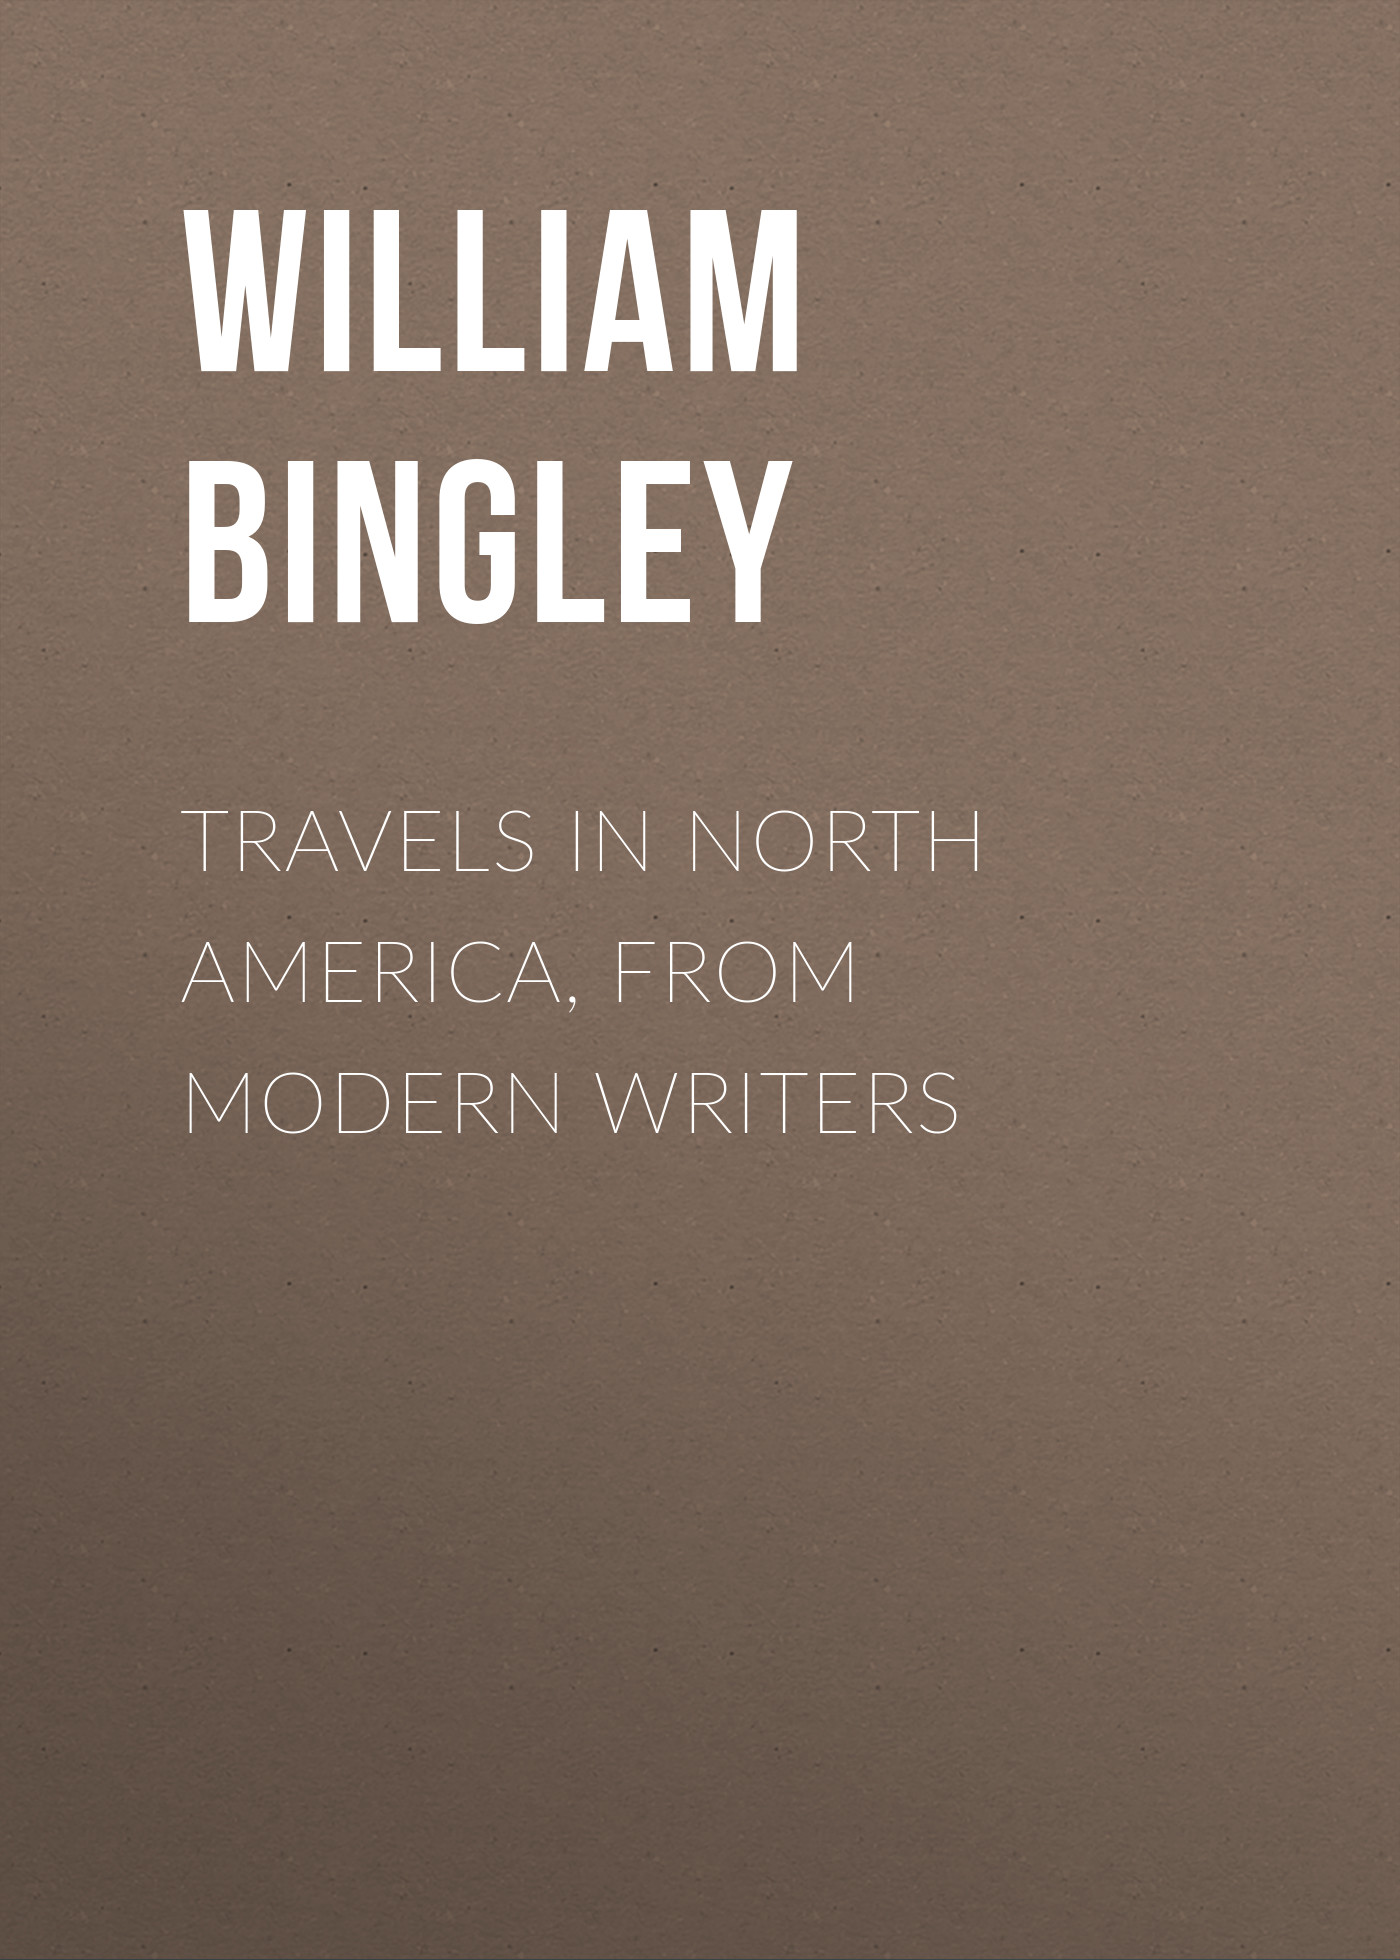 William Bingley Travels in North America, From Modern Writers